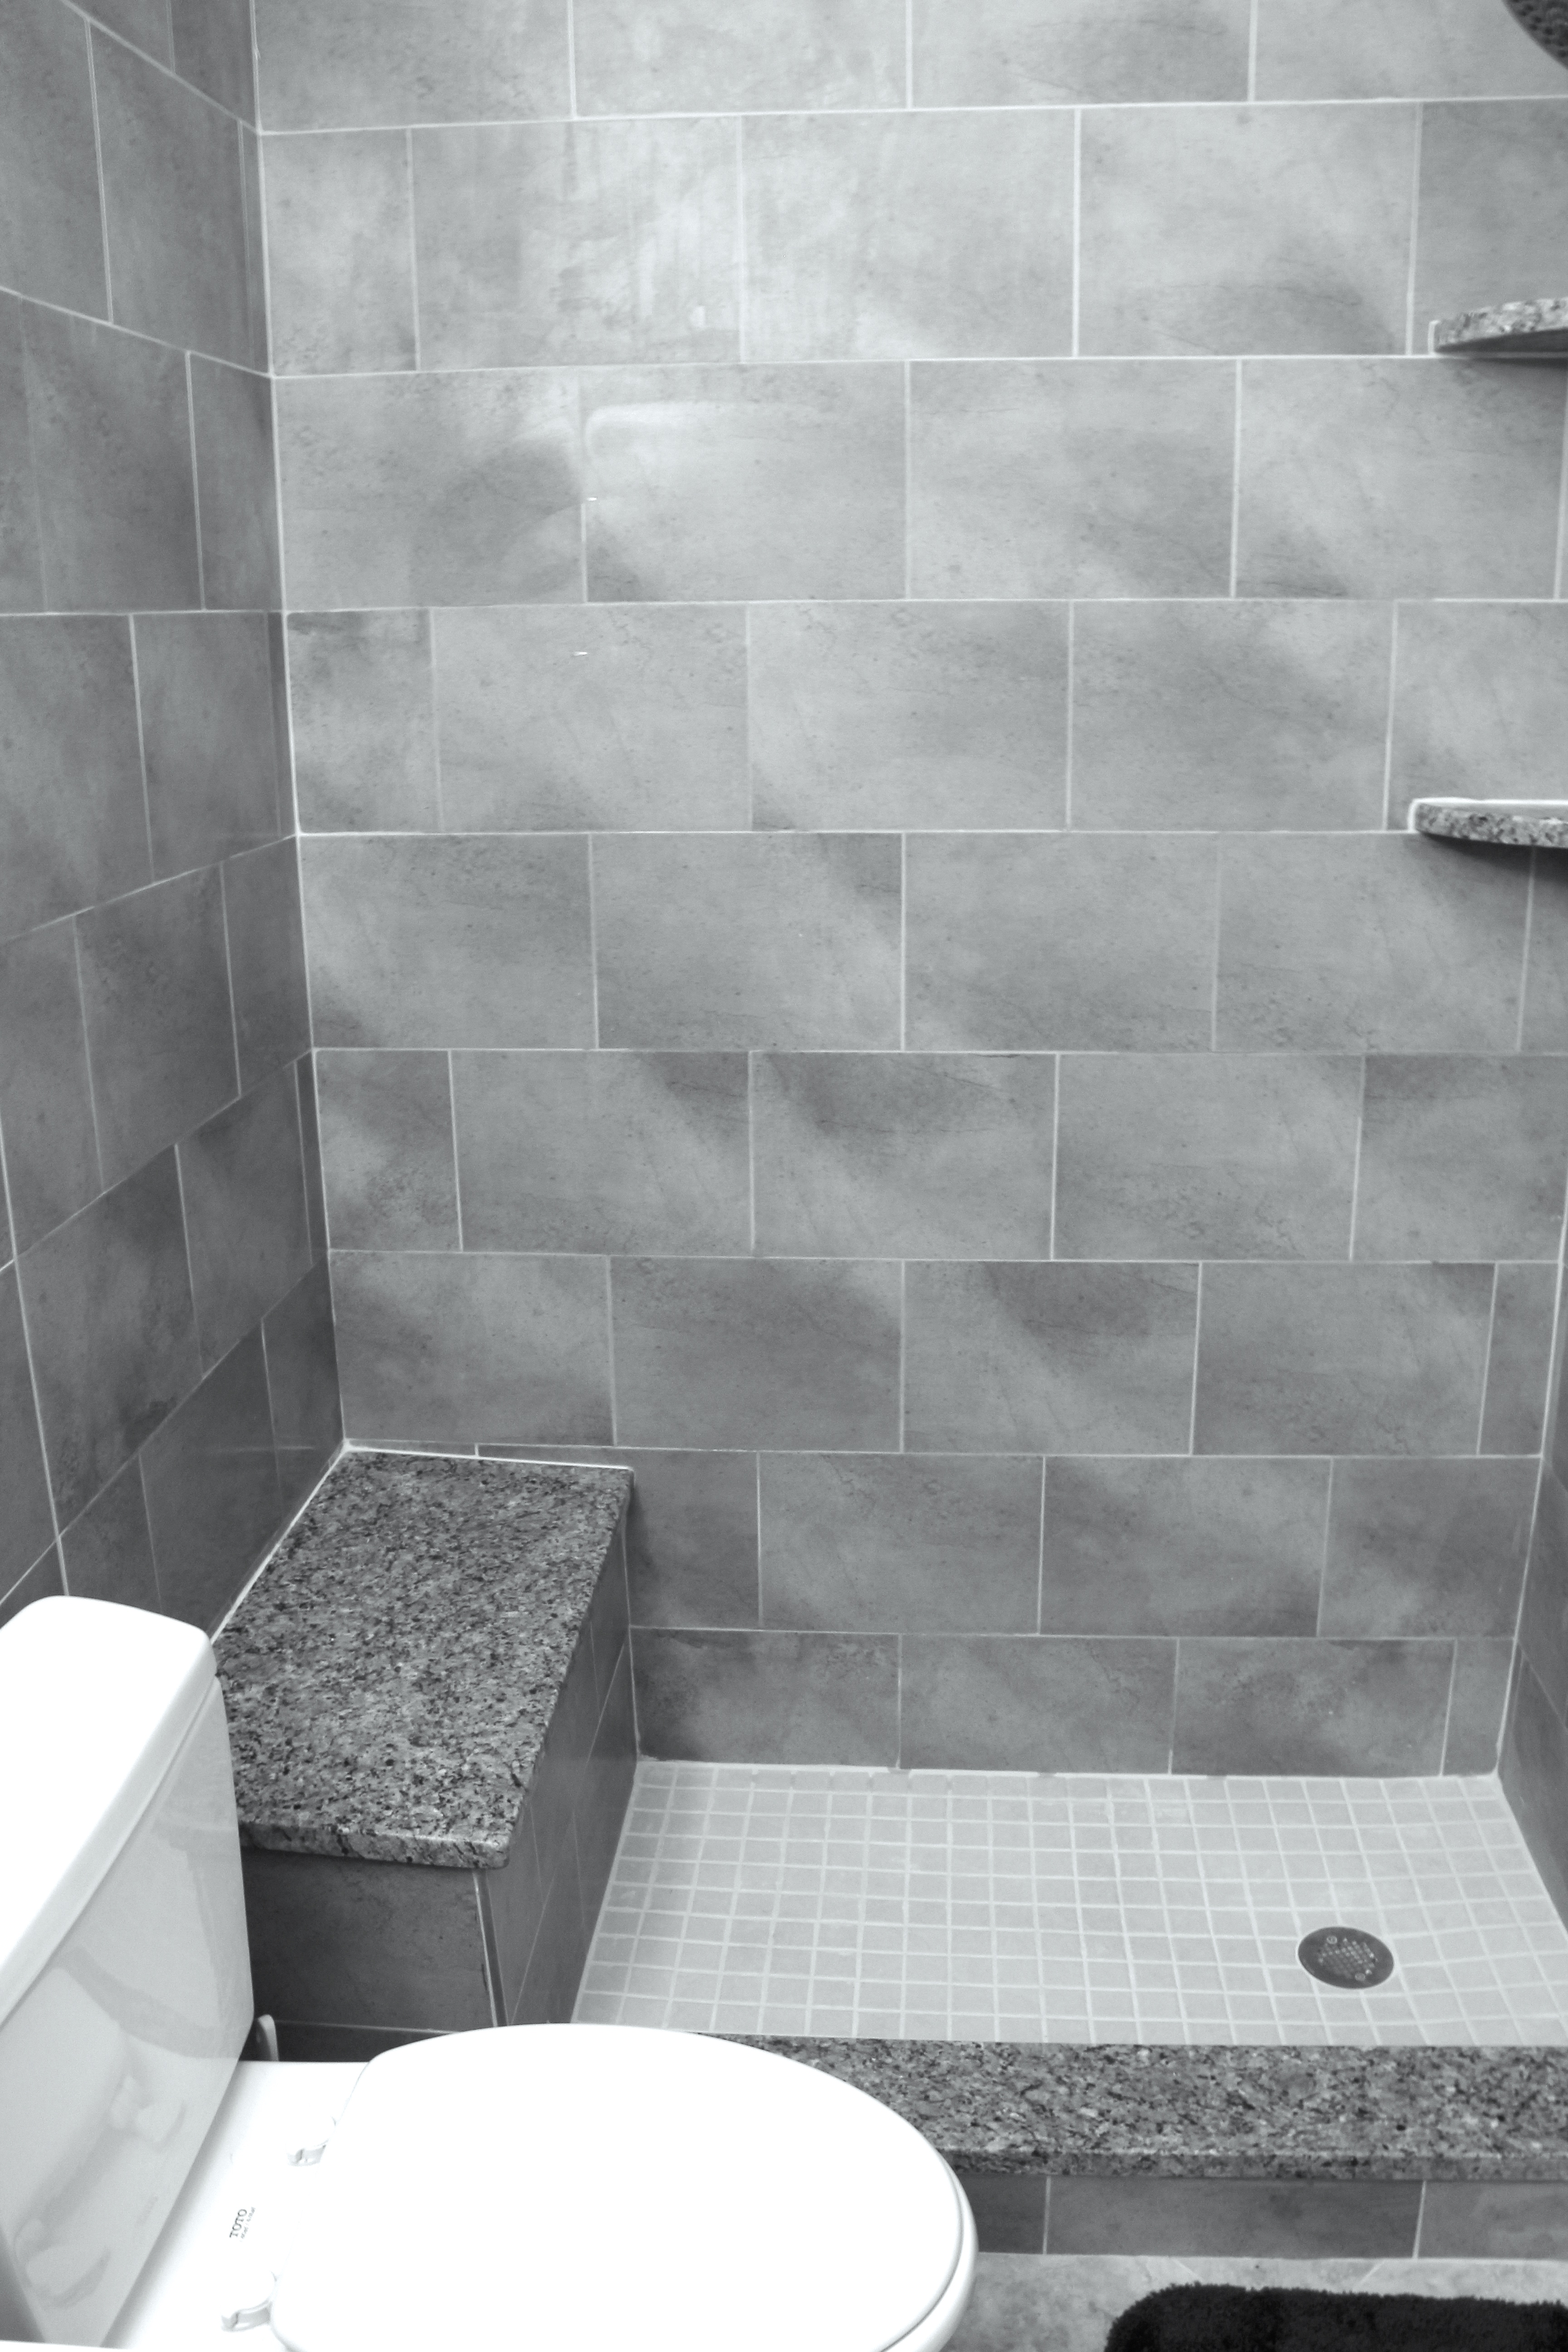 61. Bath Tub Replacements · Bathroom Remodeling · Flooring · Shower For  Elderly Or People ...